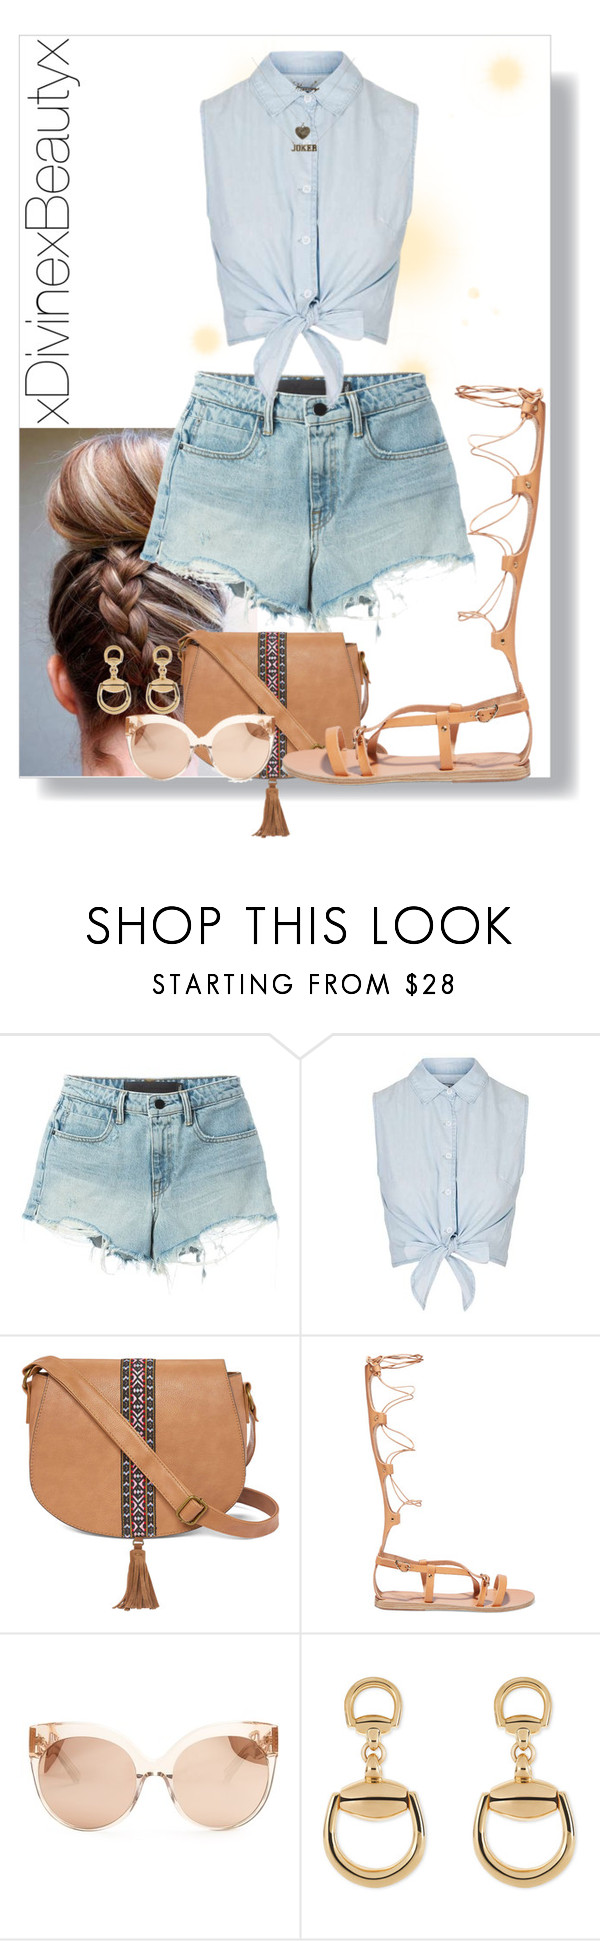 """""""Untitled No.253"""" by xdivinexbeautyx ❤ liked on Polyvore featuring T By Alexander Wang, Topshop, T-shirt & Jeans, Ancient Greek Sandals, Linda Farrow and Gucci"""